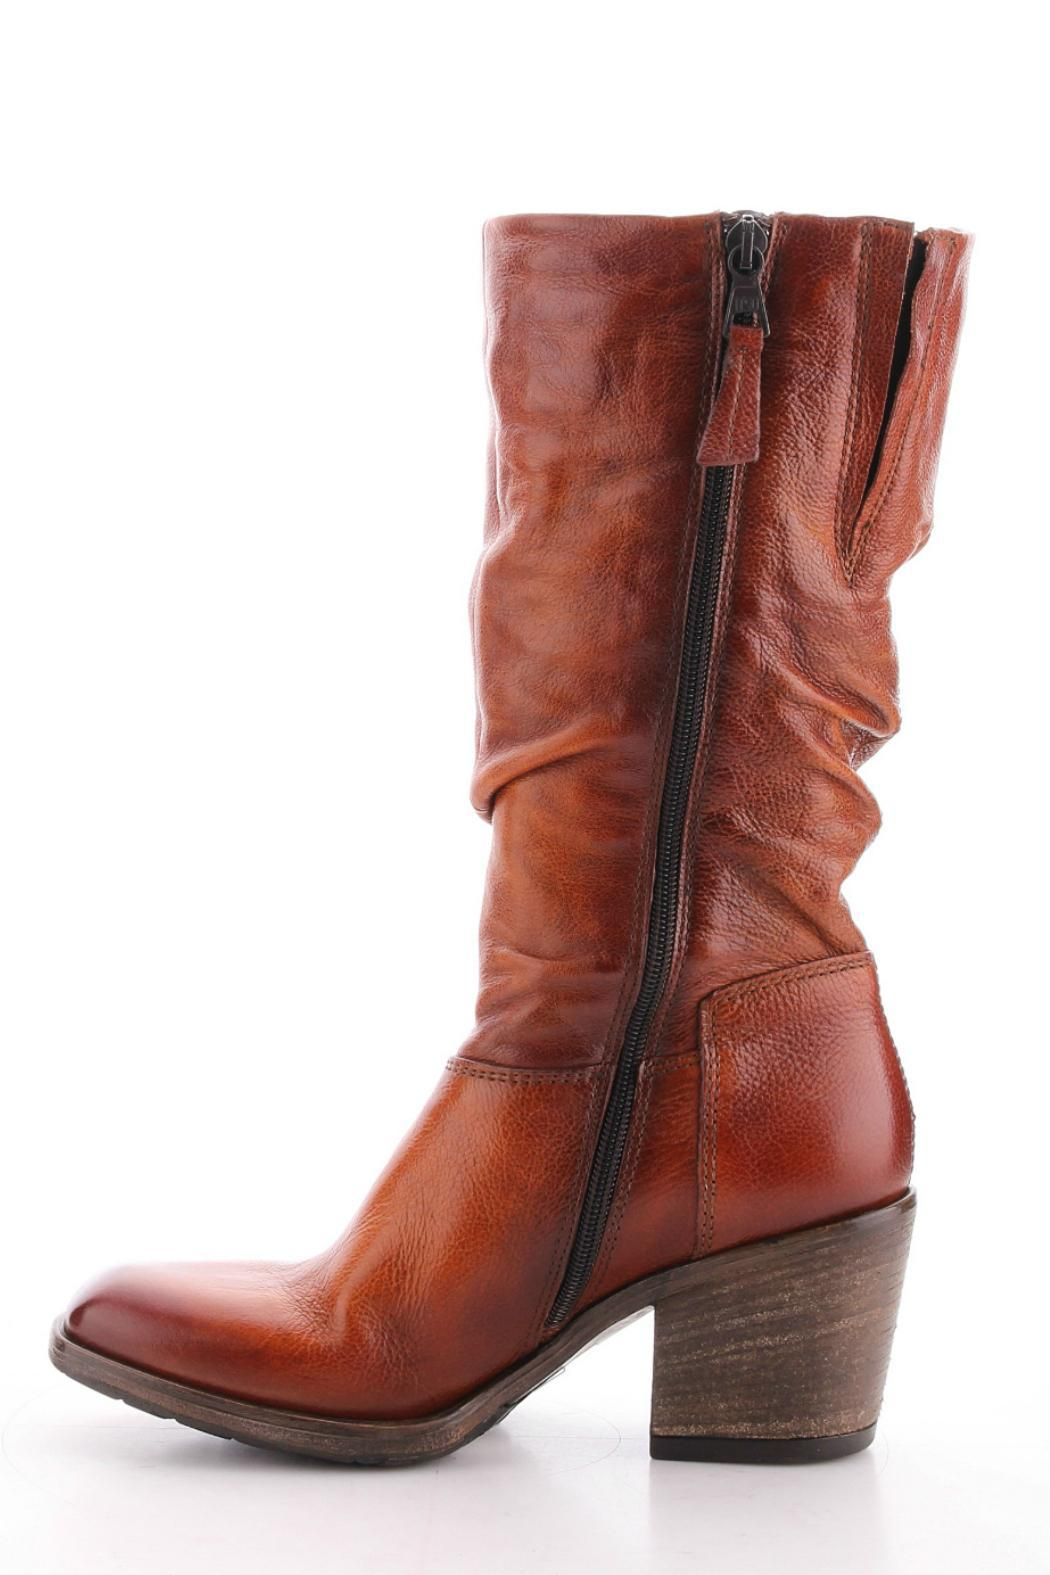 455b46de0ca A.S. 98 Mid Calf Boot from Canada by LaBelle — Shoptiques